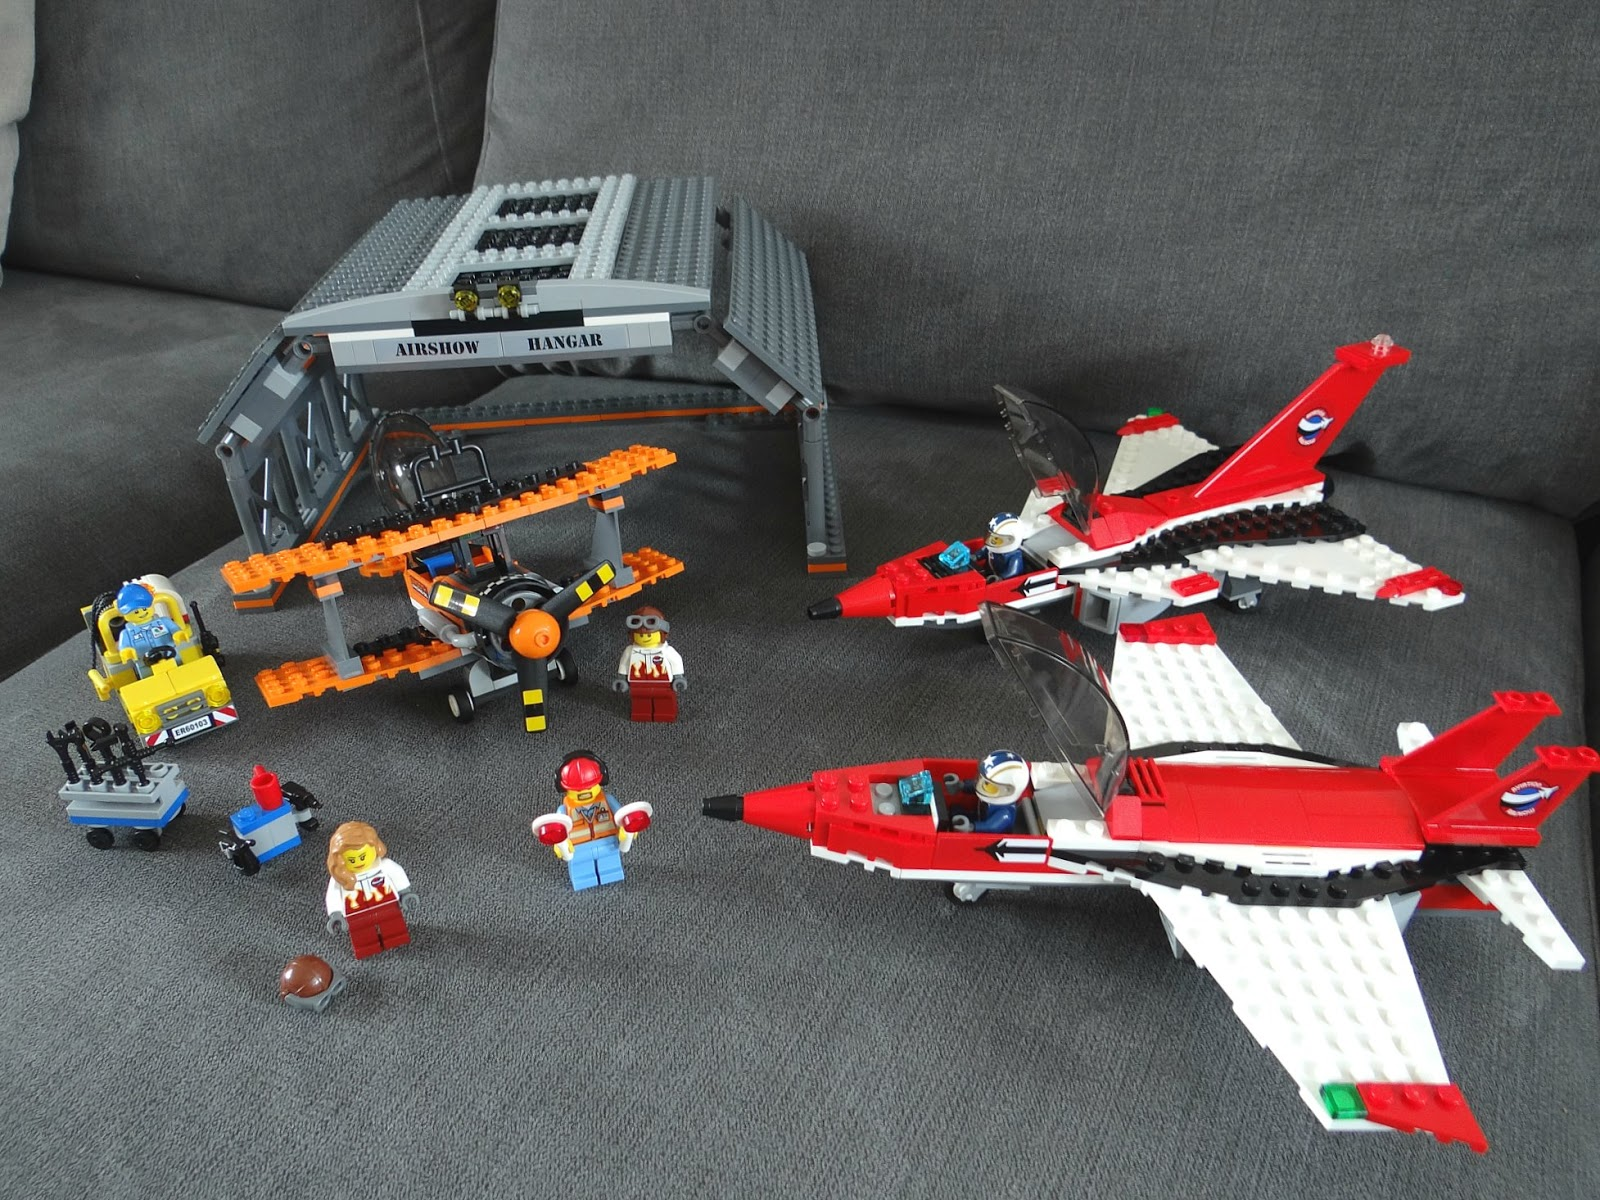 New LEGO City Range: Airport (ft. Air Show Set) | This Is Life